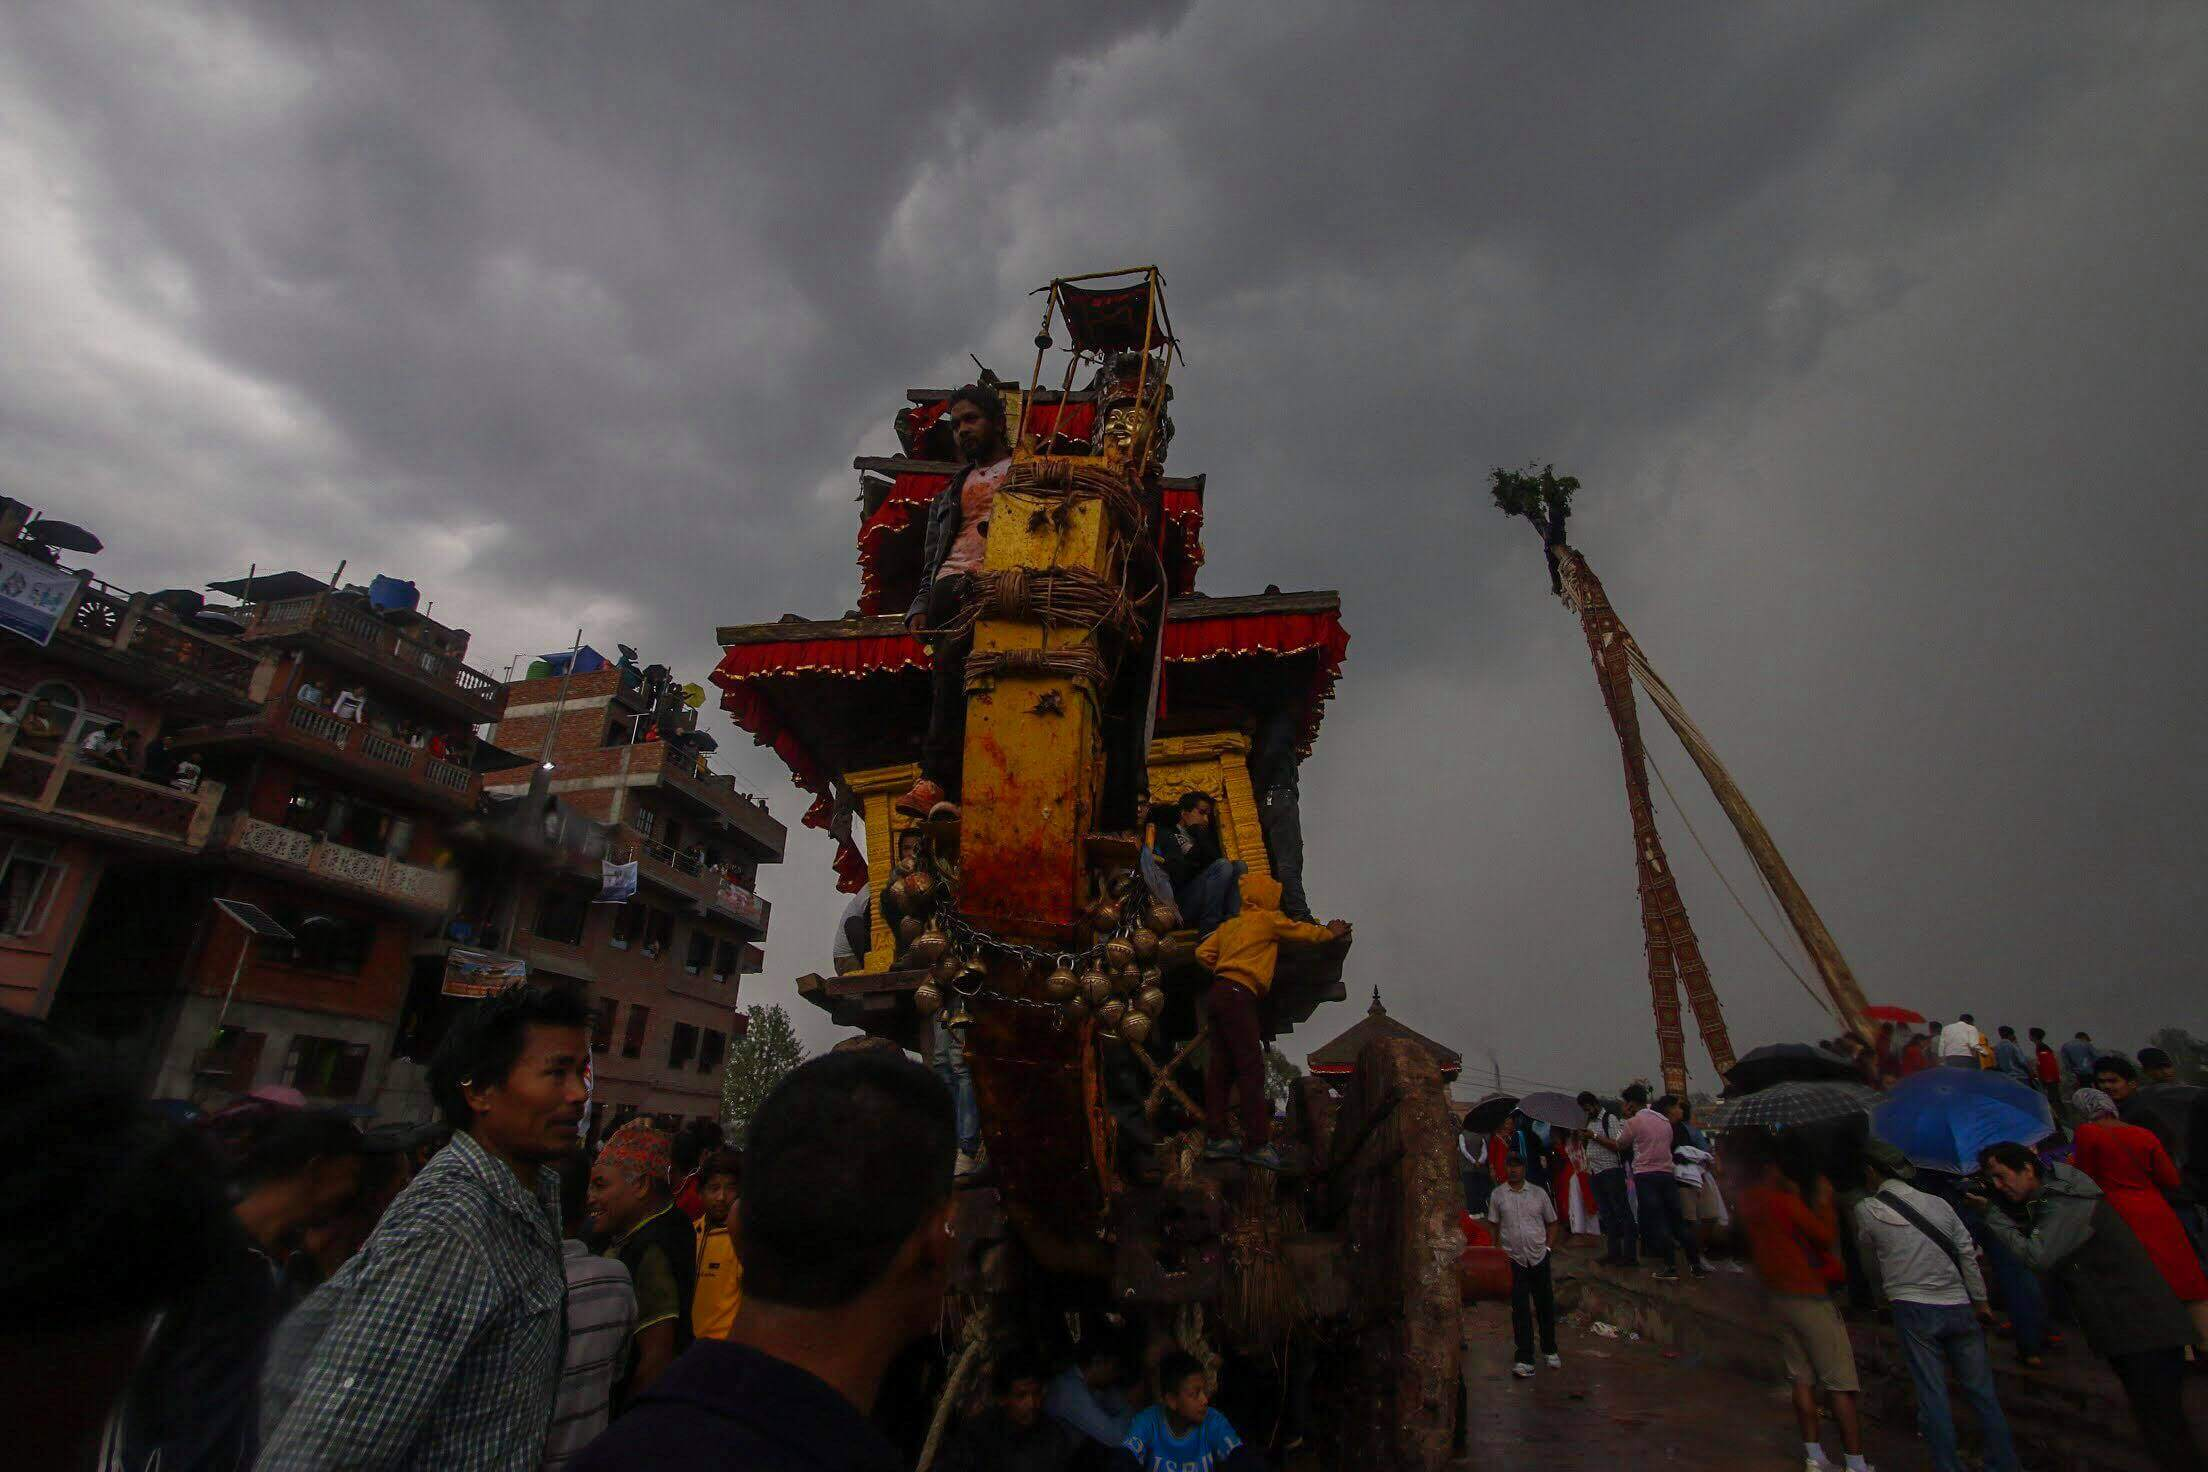 People of Bhaktapur celebrate the 5th day of Bika Jatra in Bhaktapur, despite rain. The yoshin dyo or pole that was erected on the previous day is pulled down on the day of the New Year, whereas the chariot of Bhairab is taken back to Gahiti.